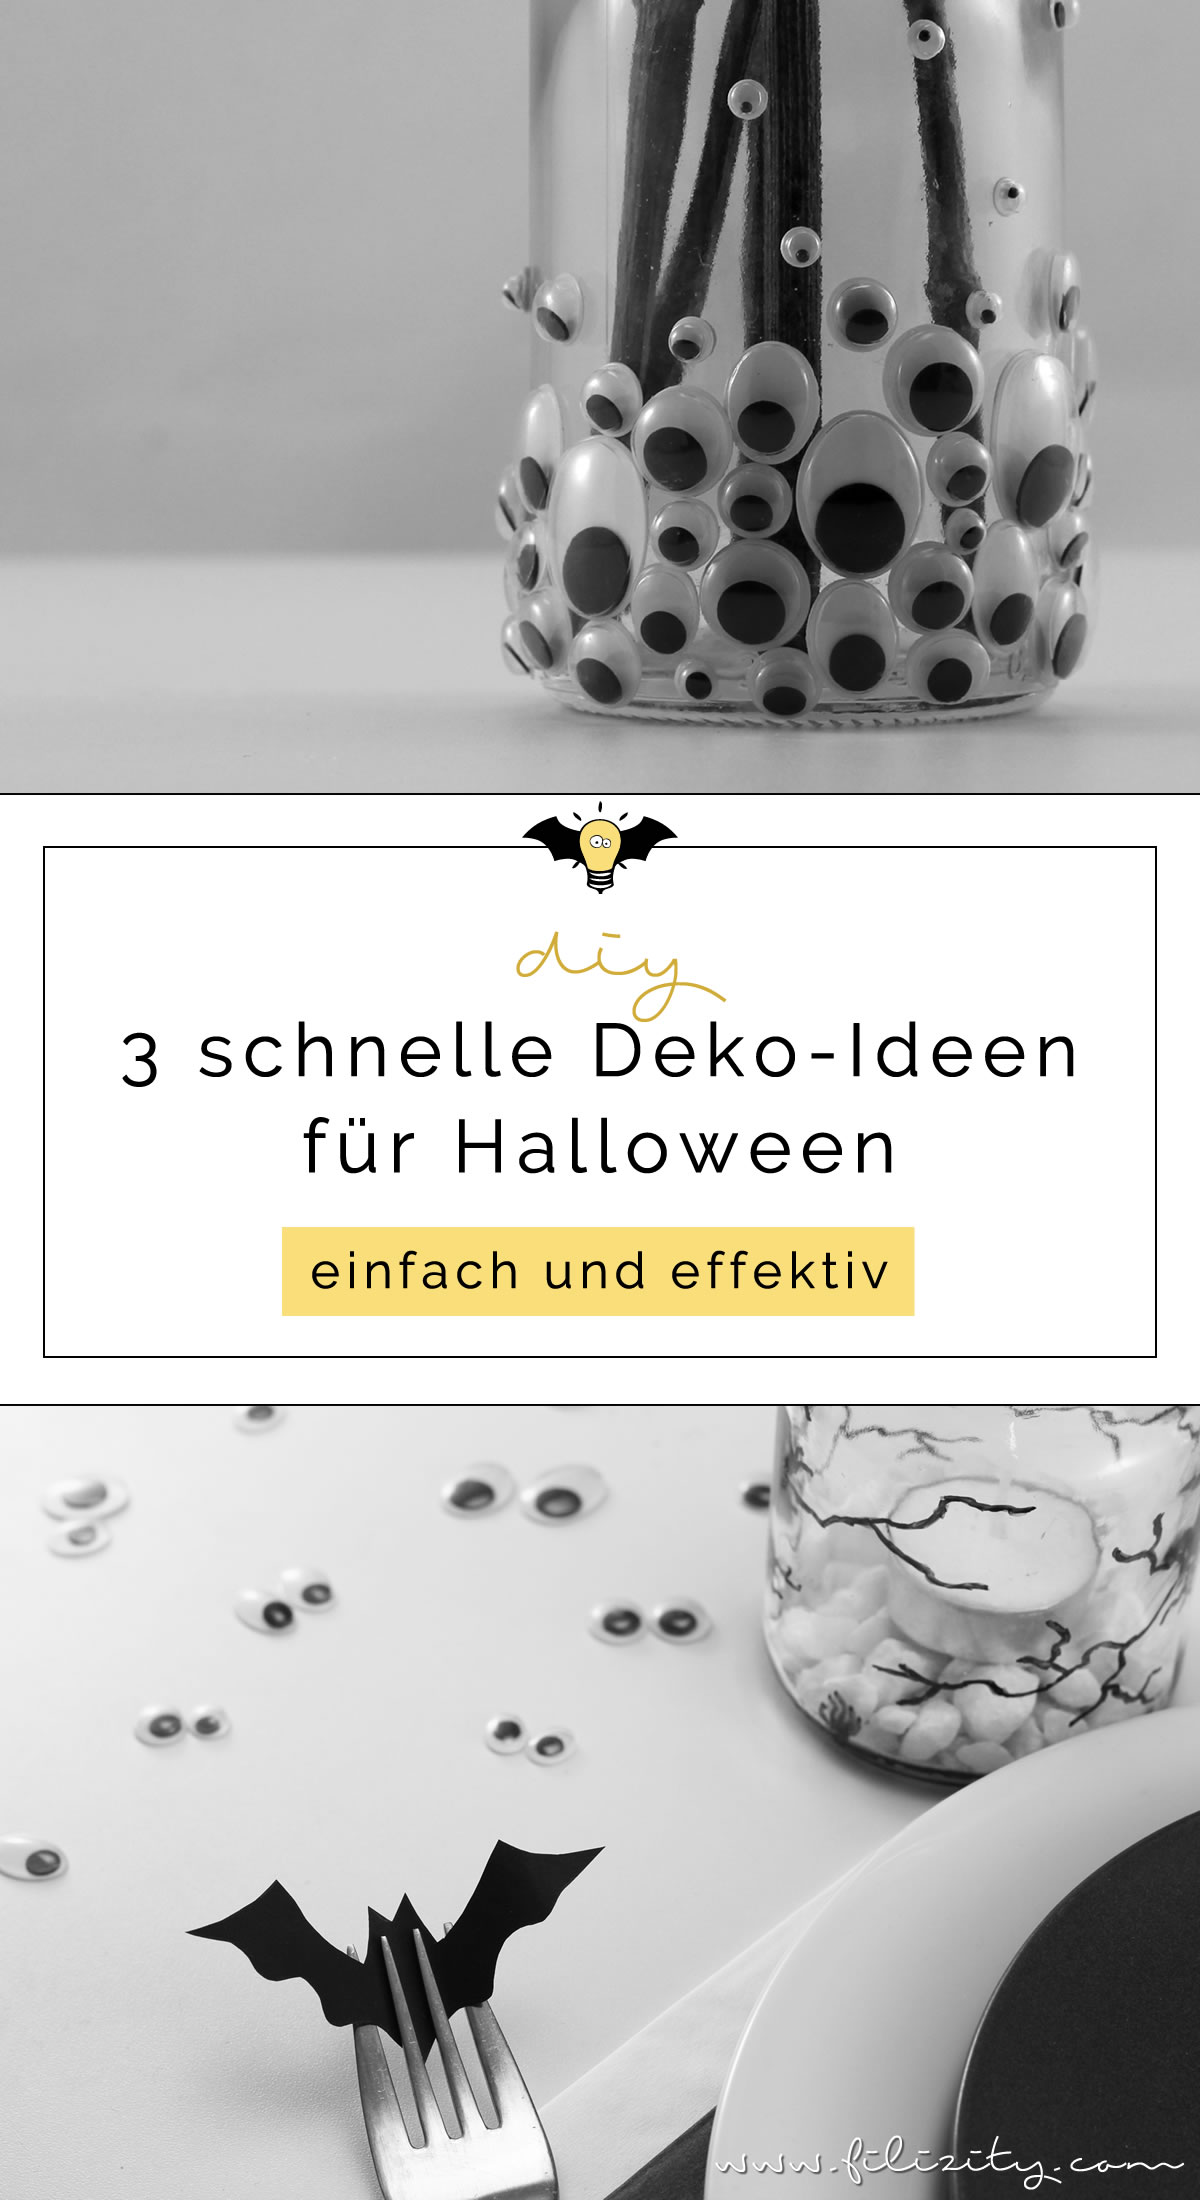 3 schnelle halloween deko ideen zum selbermachen diy blog aus dem rheinland. Black Bedroom Furniture Sets. Home Design Ideas